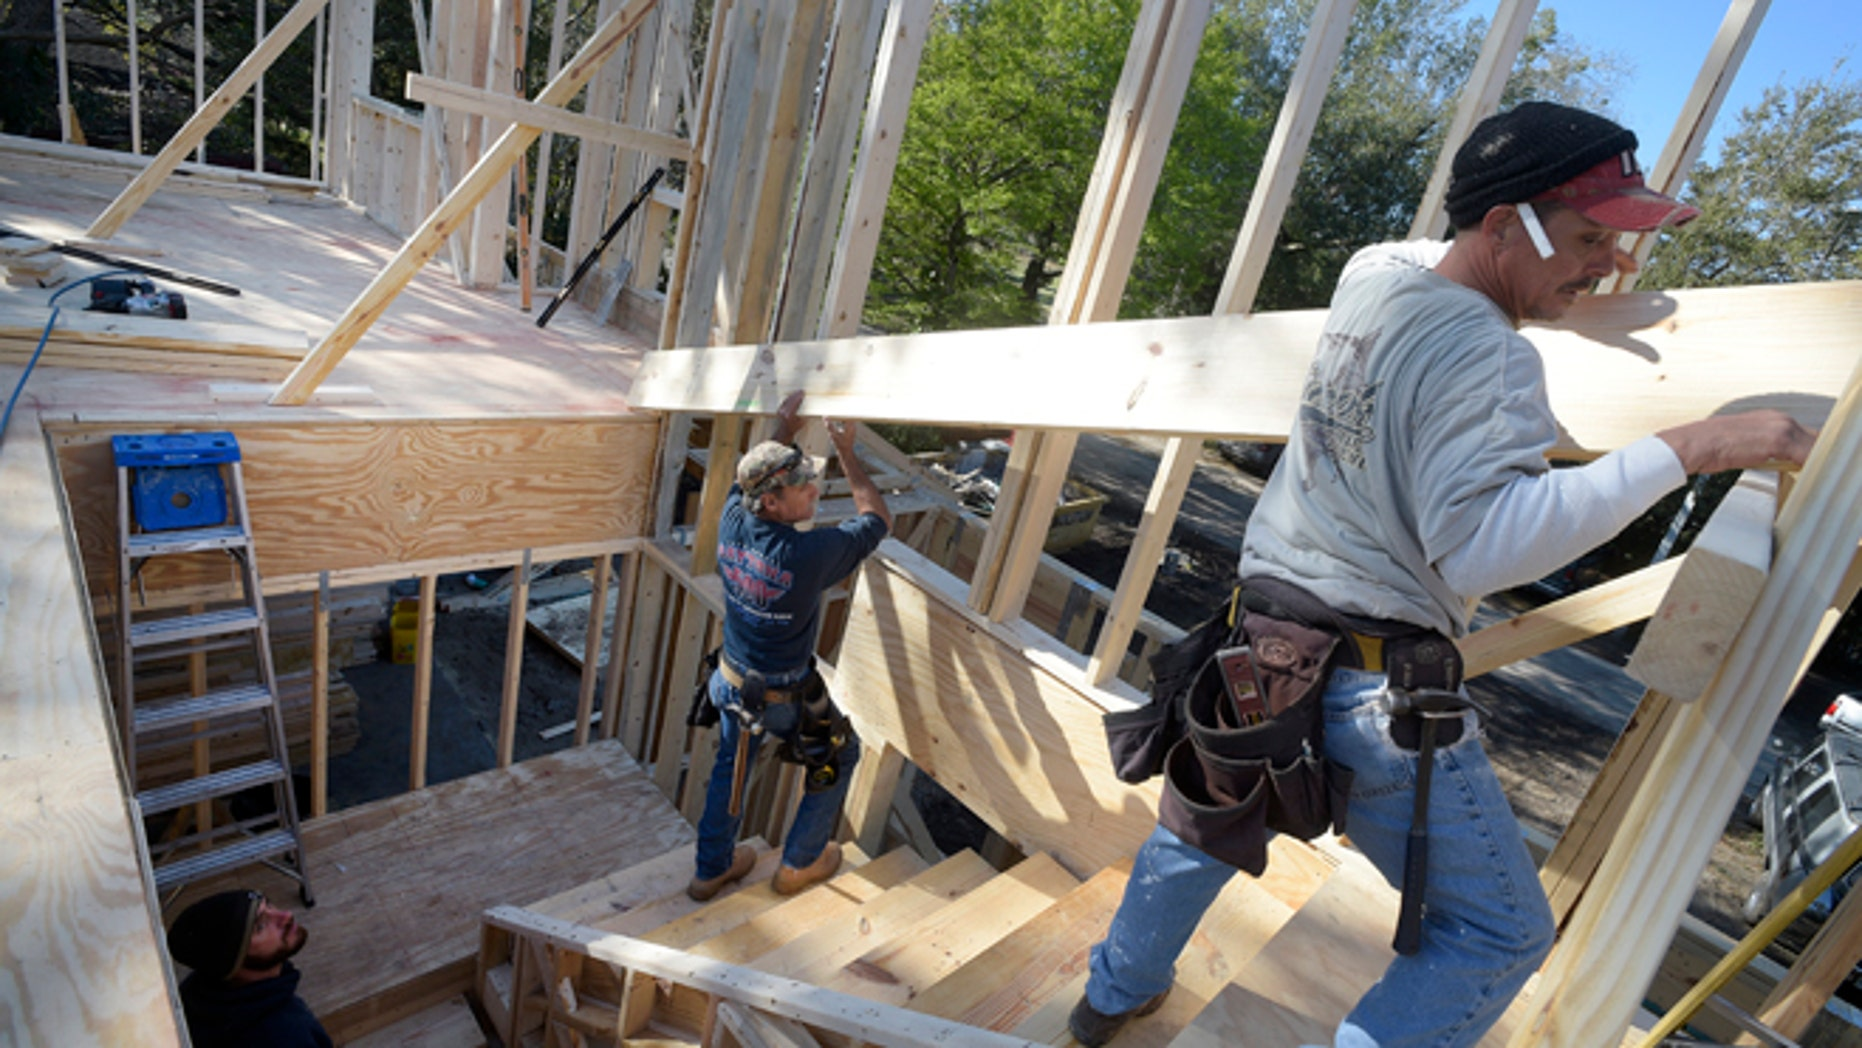 In this Feb. 13, 2015 photo, construction workers James Gibson, left, David Rager, center, and Shawn White frame the second floor of a two-story custom home being built in Orlando, Fla. As construction jobs return in some regions, competition for skilled labor is heating up.(AP Photo/Phelan M. Ebenhack)